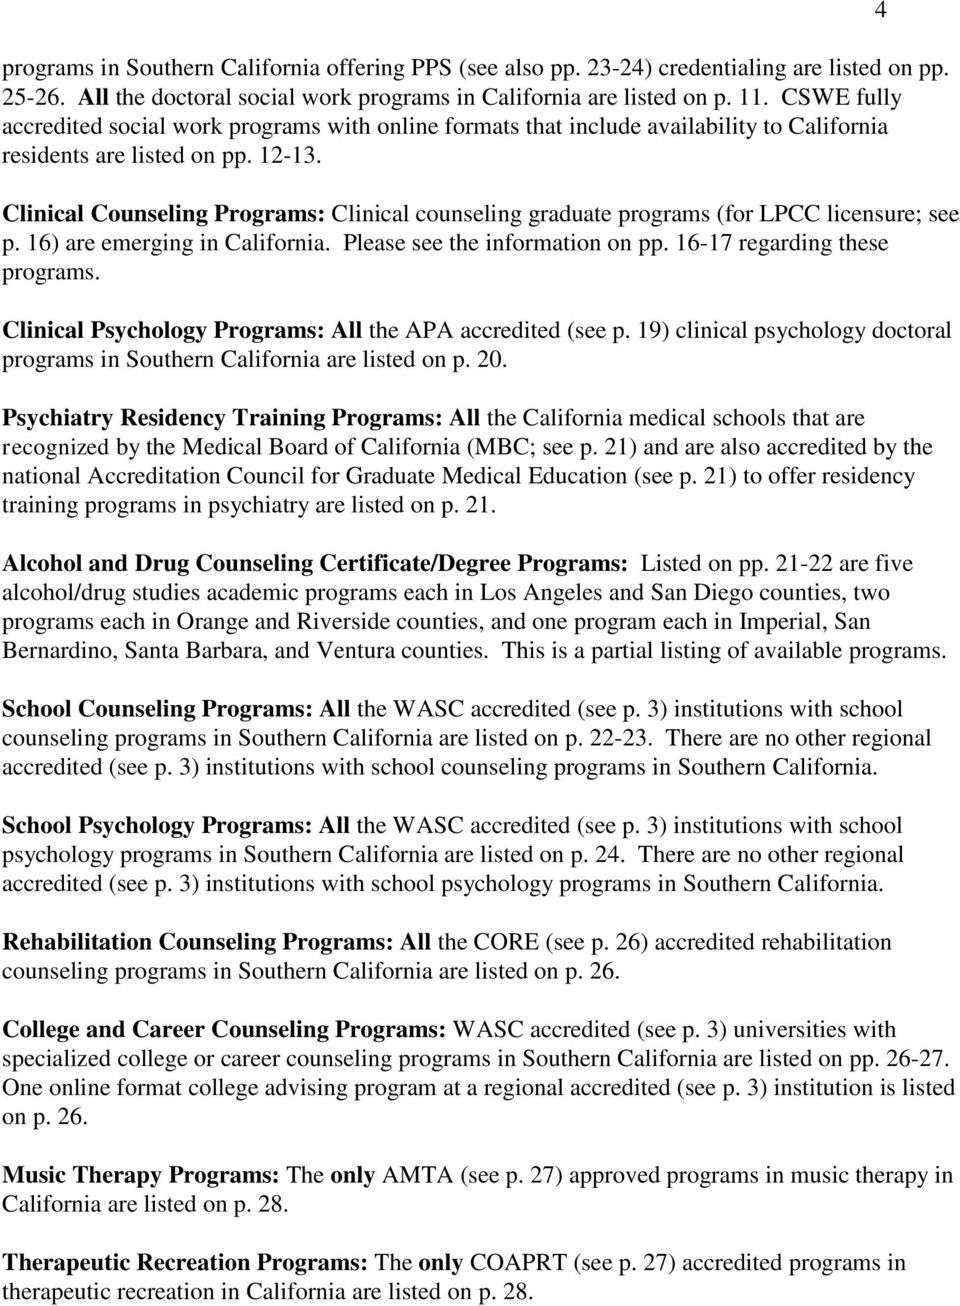 Clinical Counseling Programs: Clinical counseling graduate programs (for LPCC licensure; see p. 16) are emerging in California. Please see the information on pp. 16-17 regarding these programs.